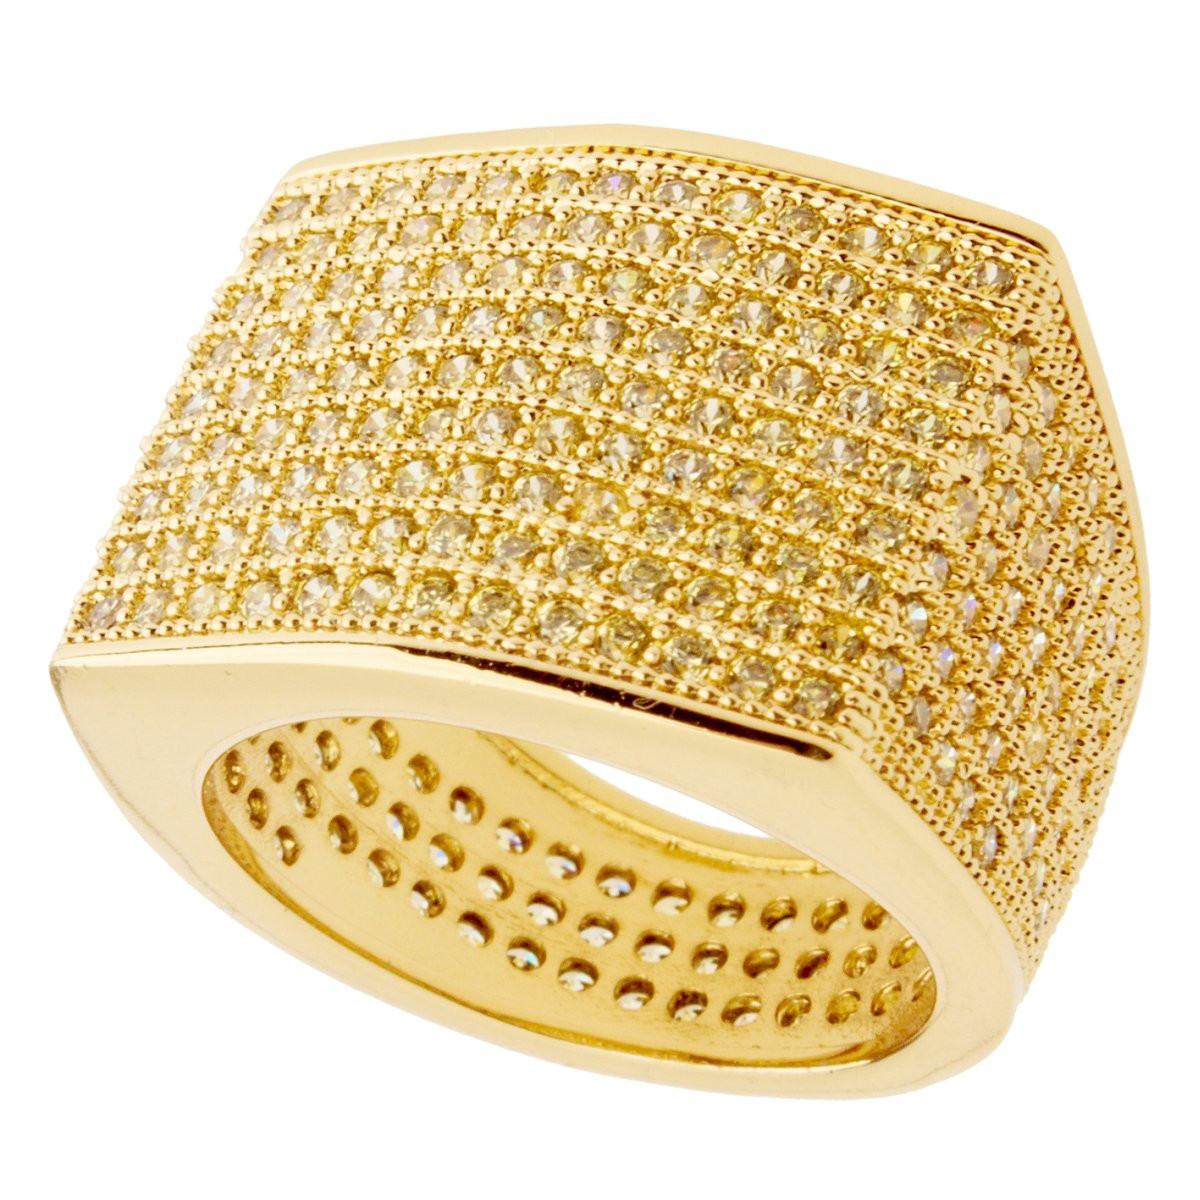 Iced Out Bling Micro Pave Ring - BLOCK gold - 10